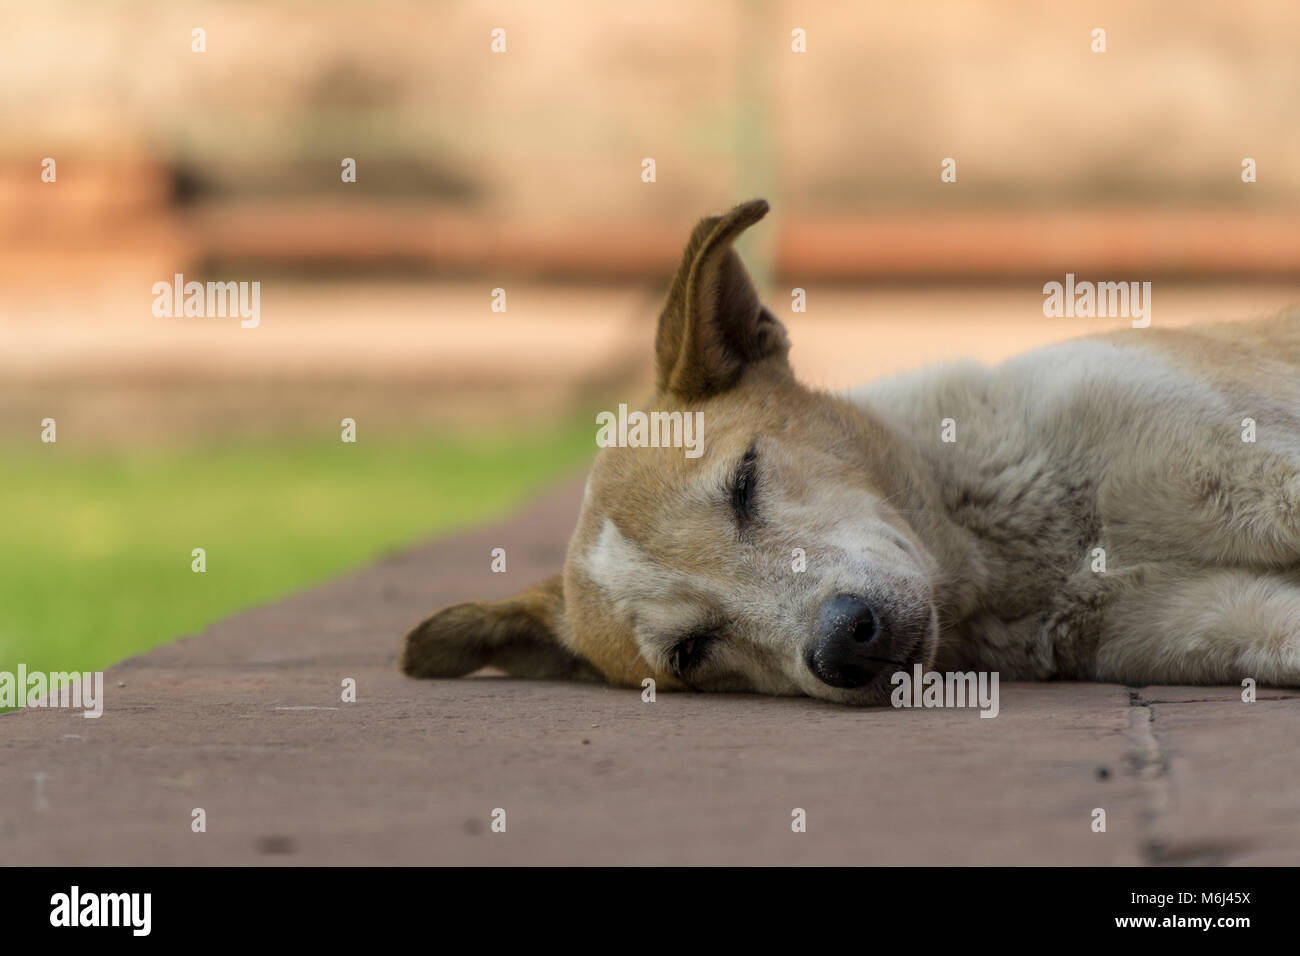 Dog Sleeping - Stock Image